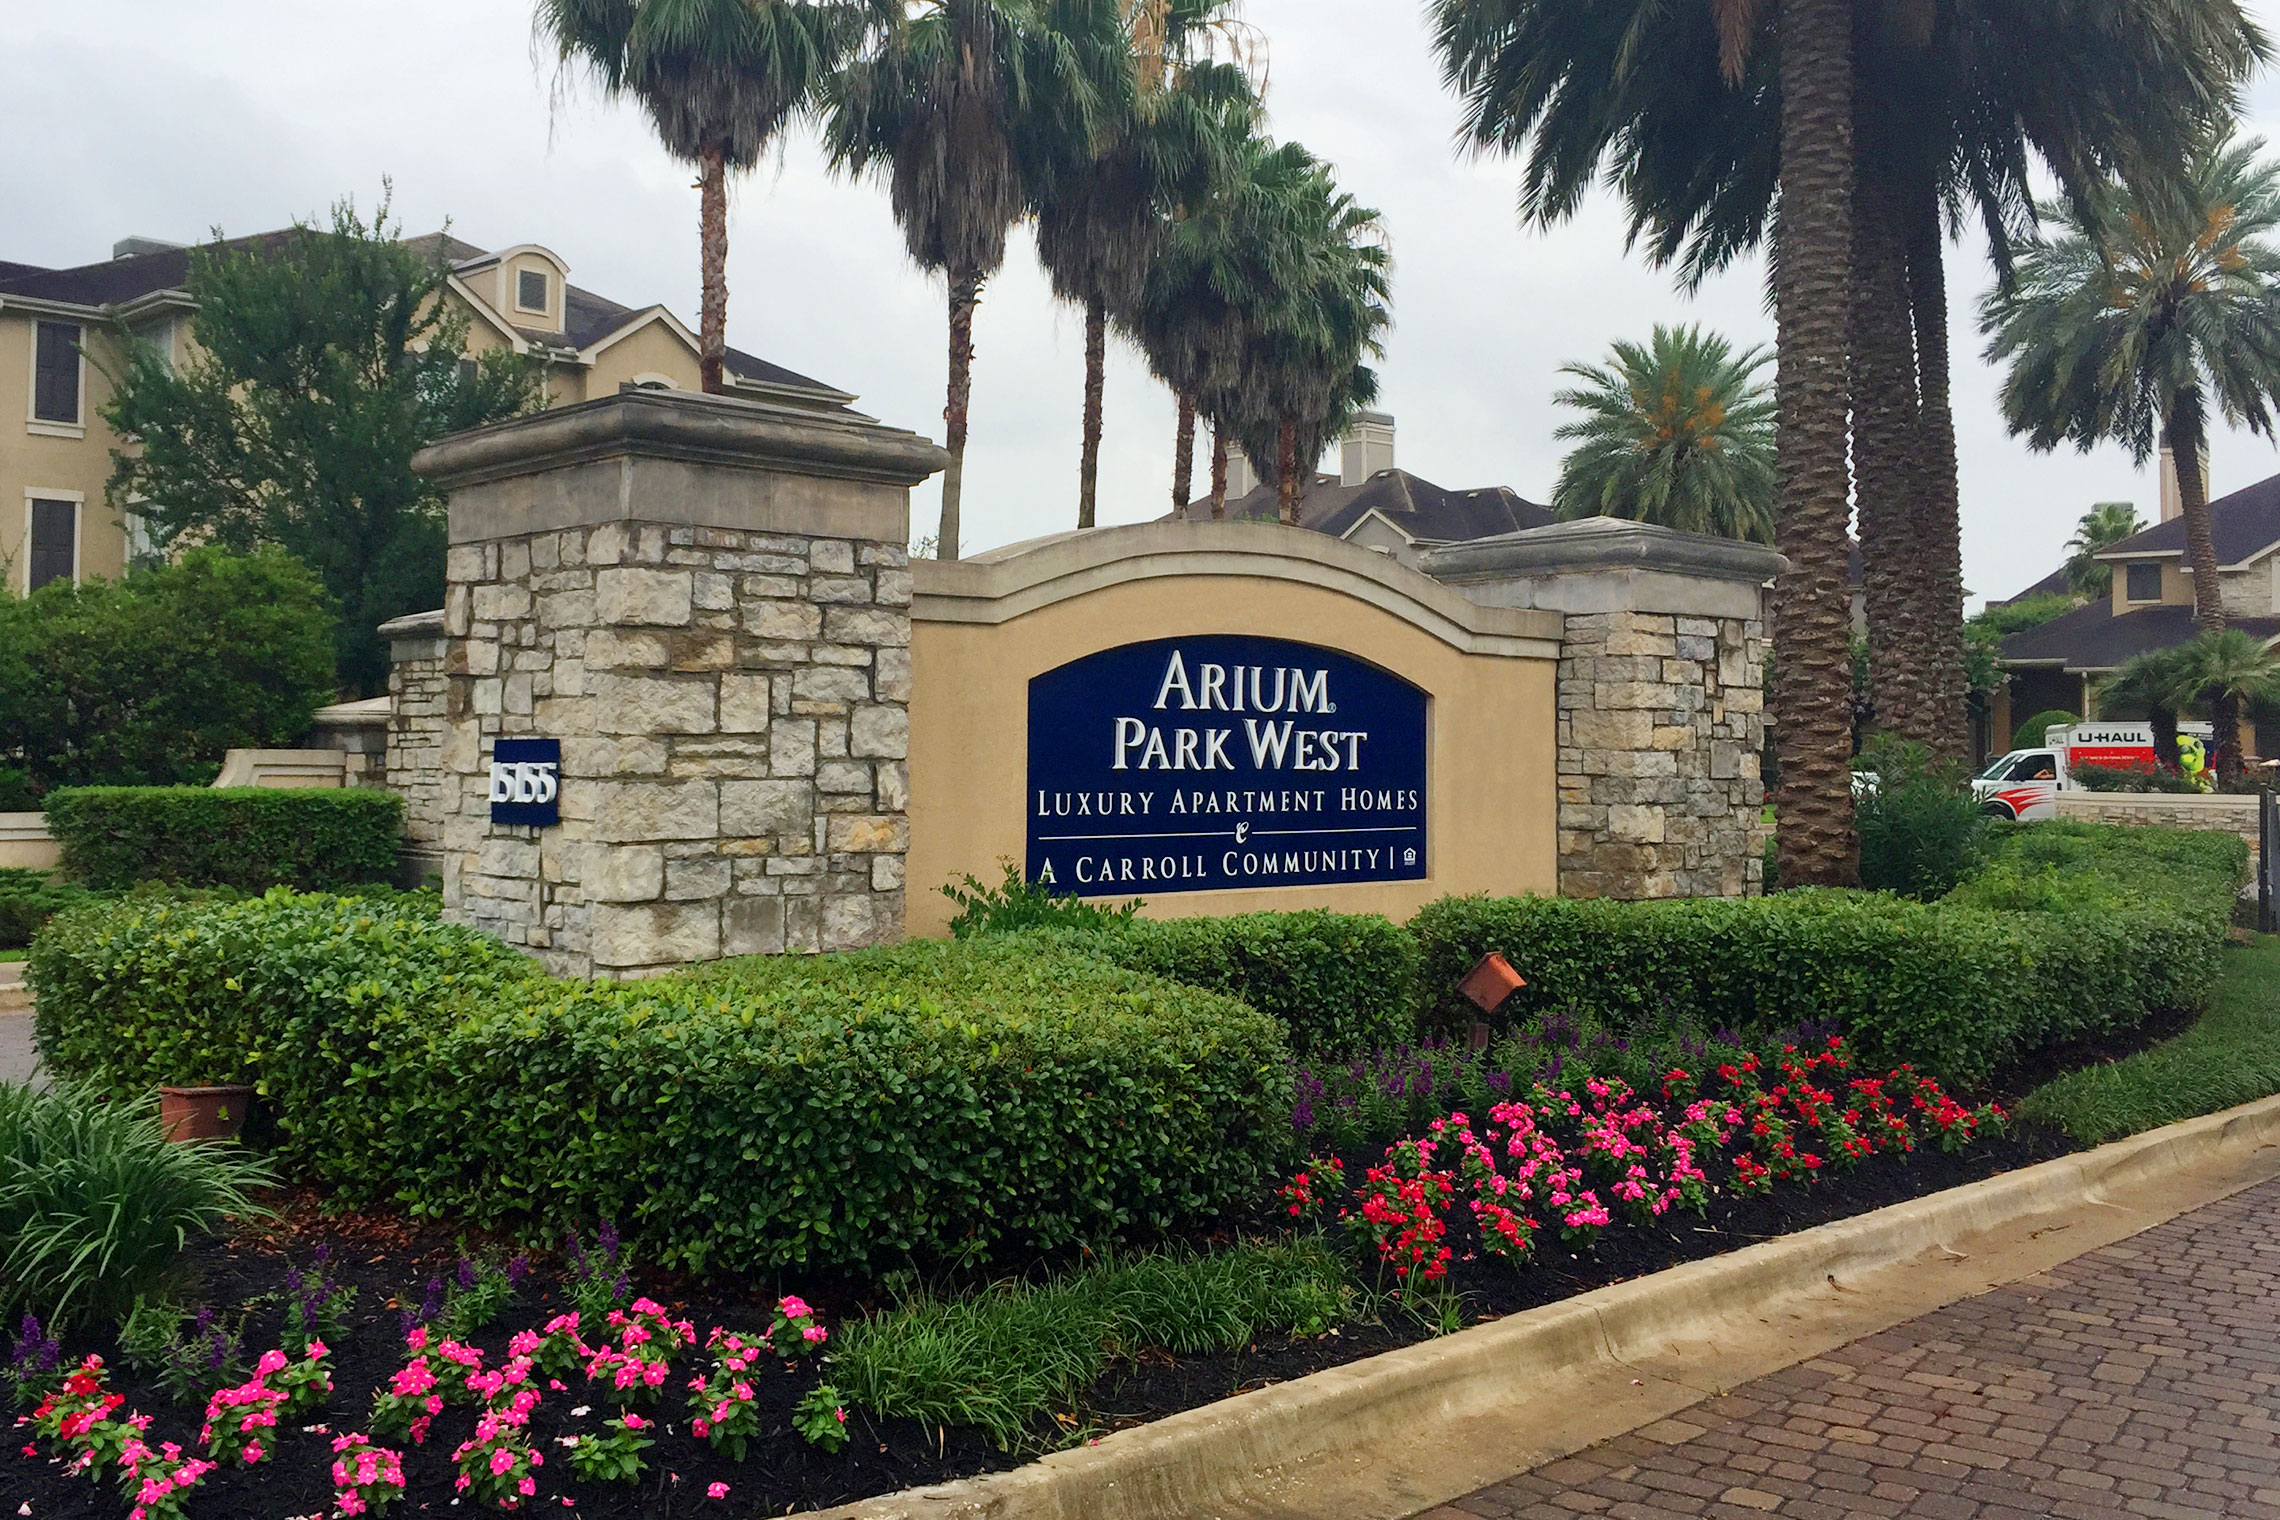 Arium Park West Luxury Apartment Homes Monument Reface with Address Number